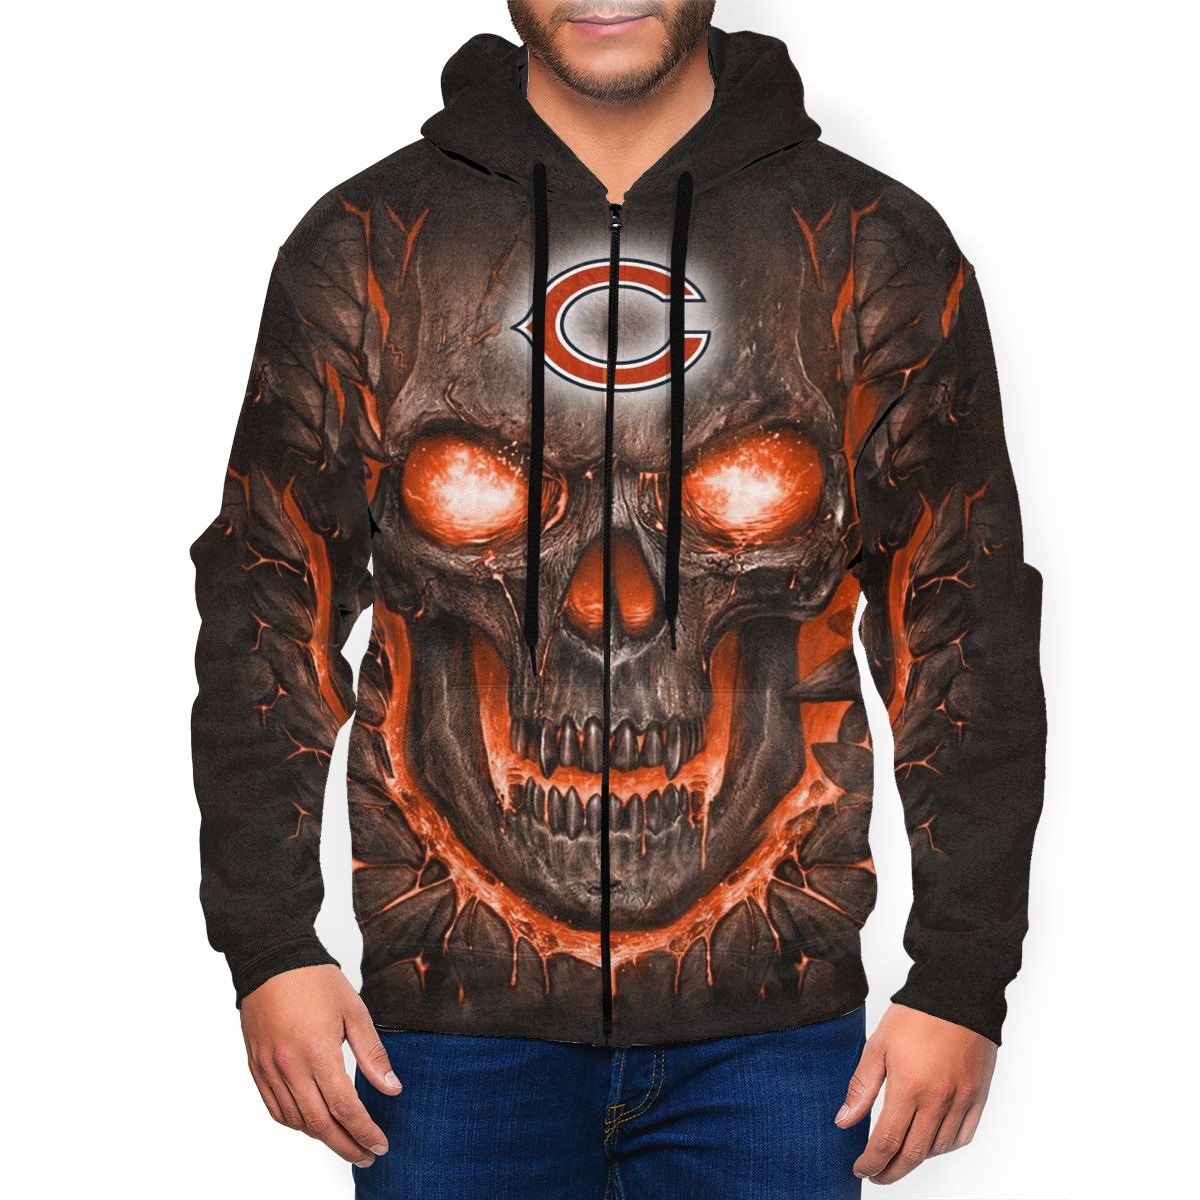 Bears Skull Lava Men's Zip Hooded Sweatshirt